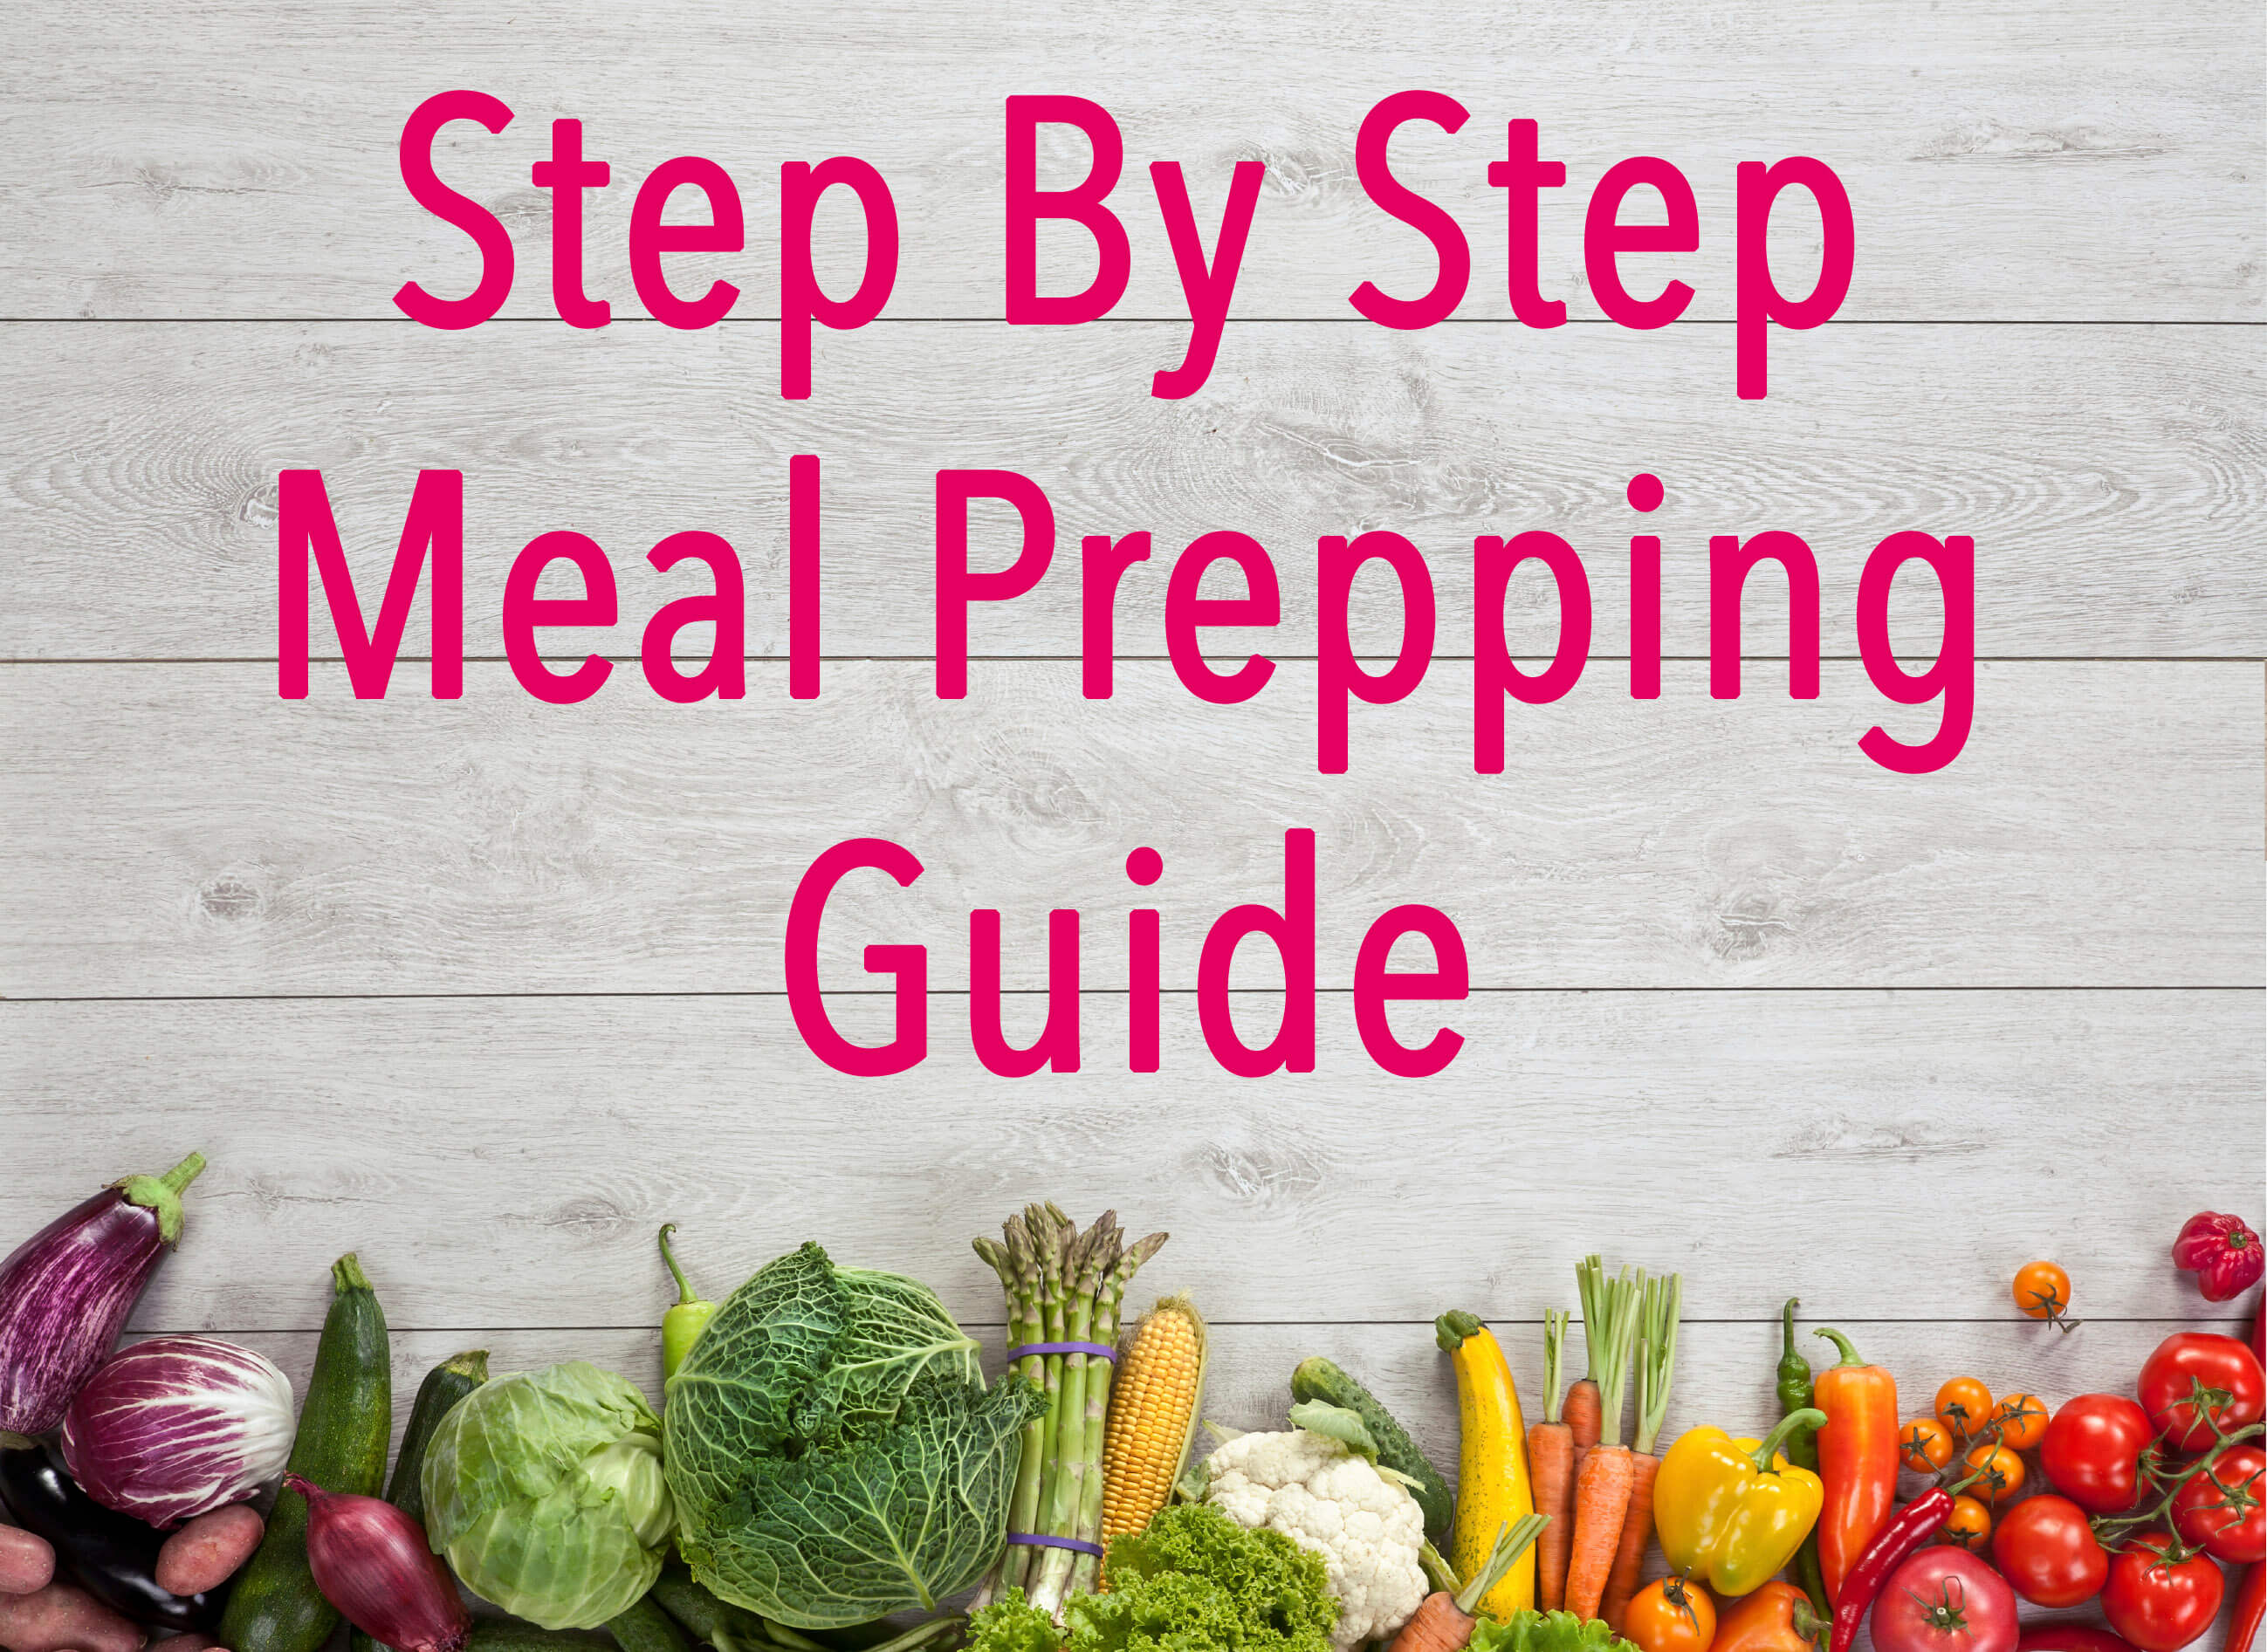 #201 Step By Step Meal Prepping Guide